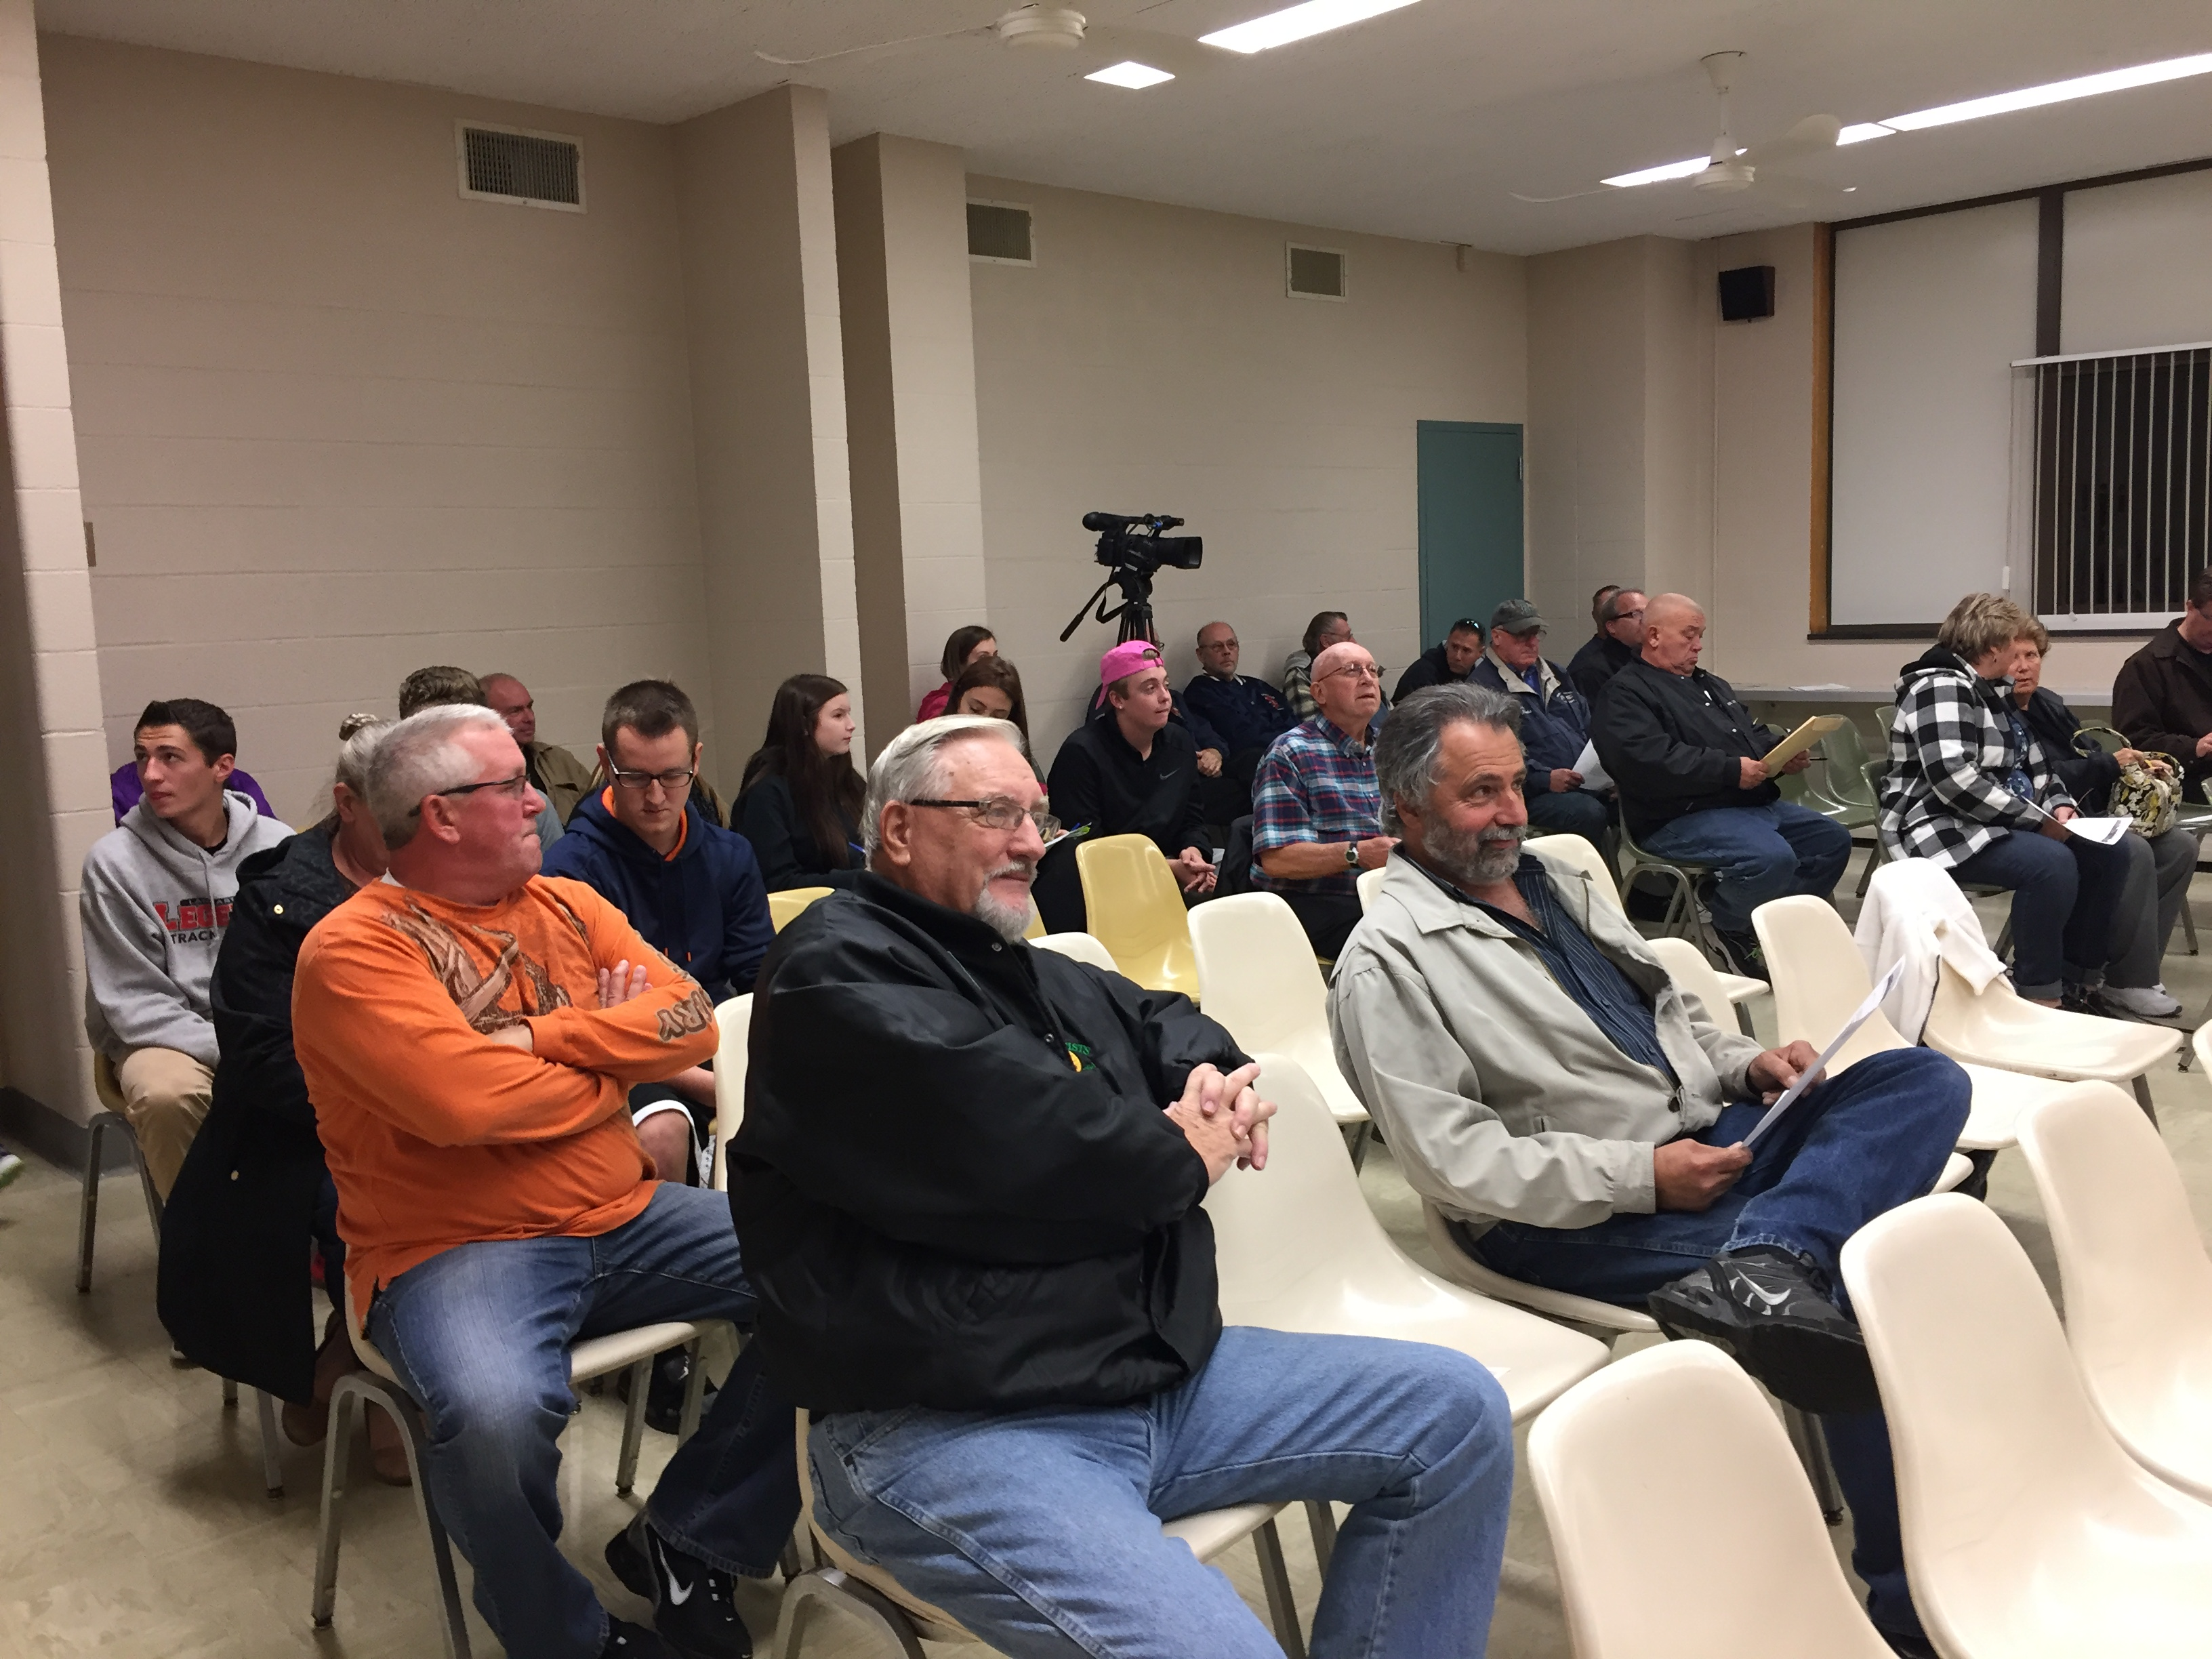 Depew residents gather before the Village Board meeting on Monday, Oct. 24, 2016. The board voted to set Jan. 17, 2017 as the date for a public referendum on whether the village government should be dissolved.